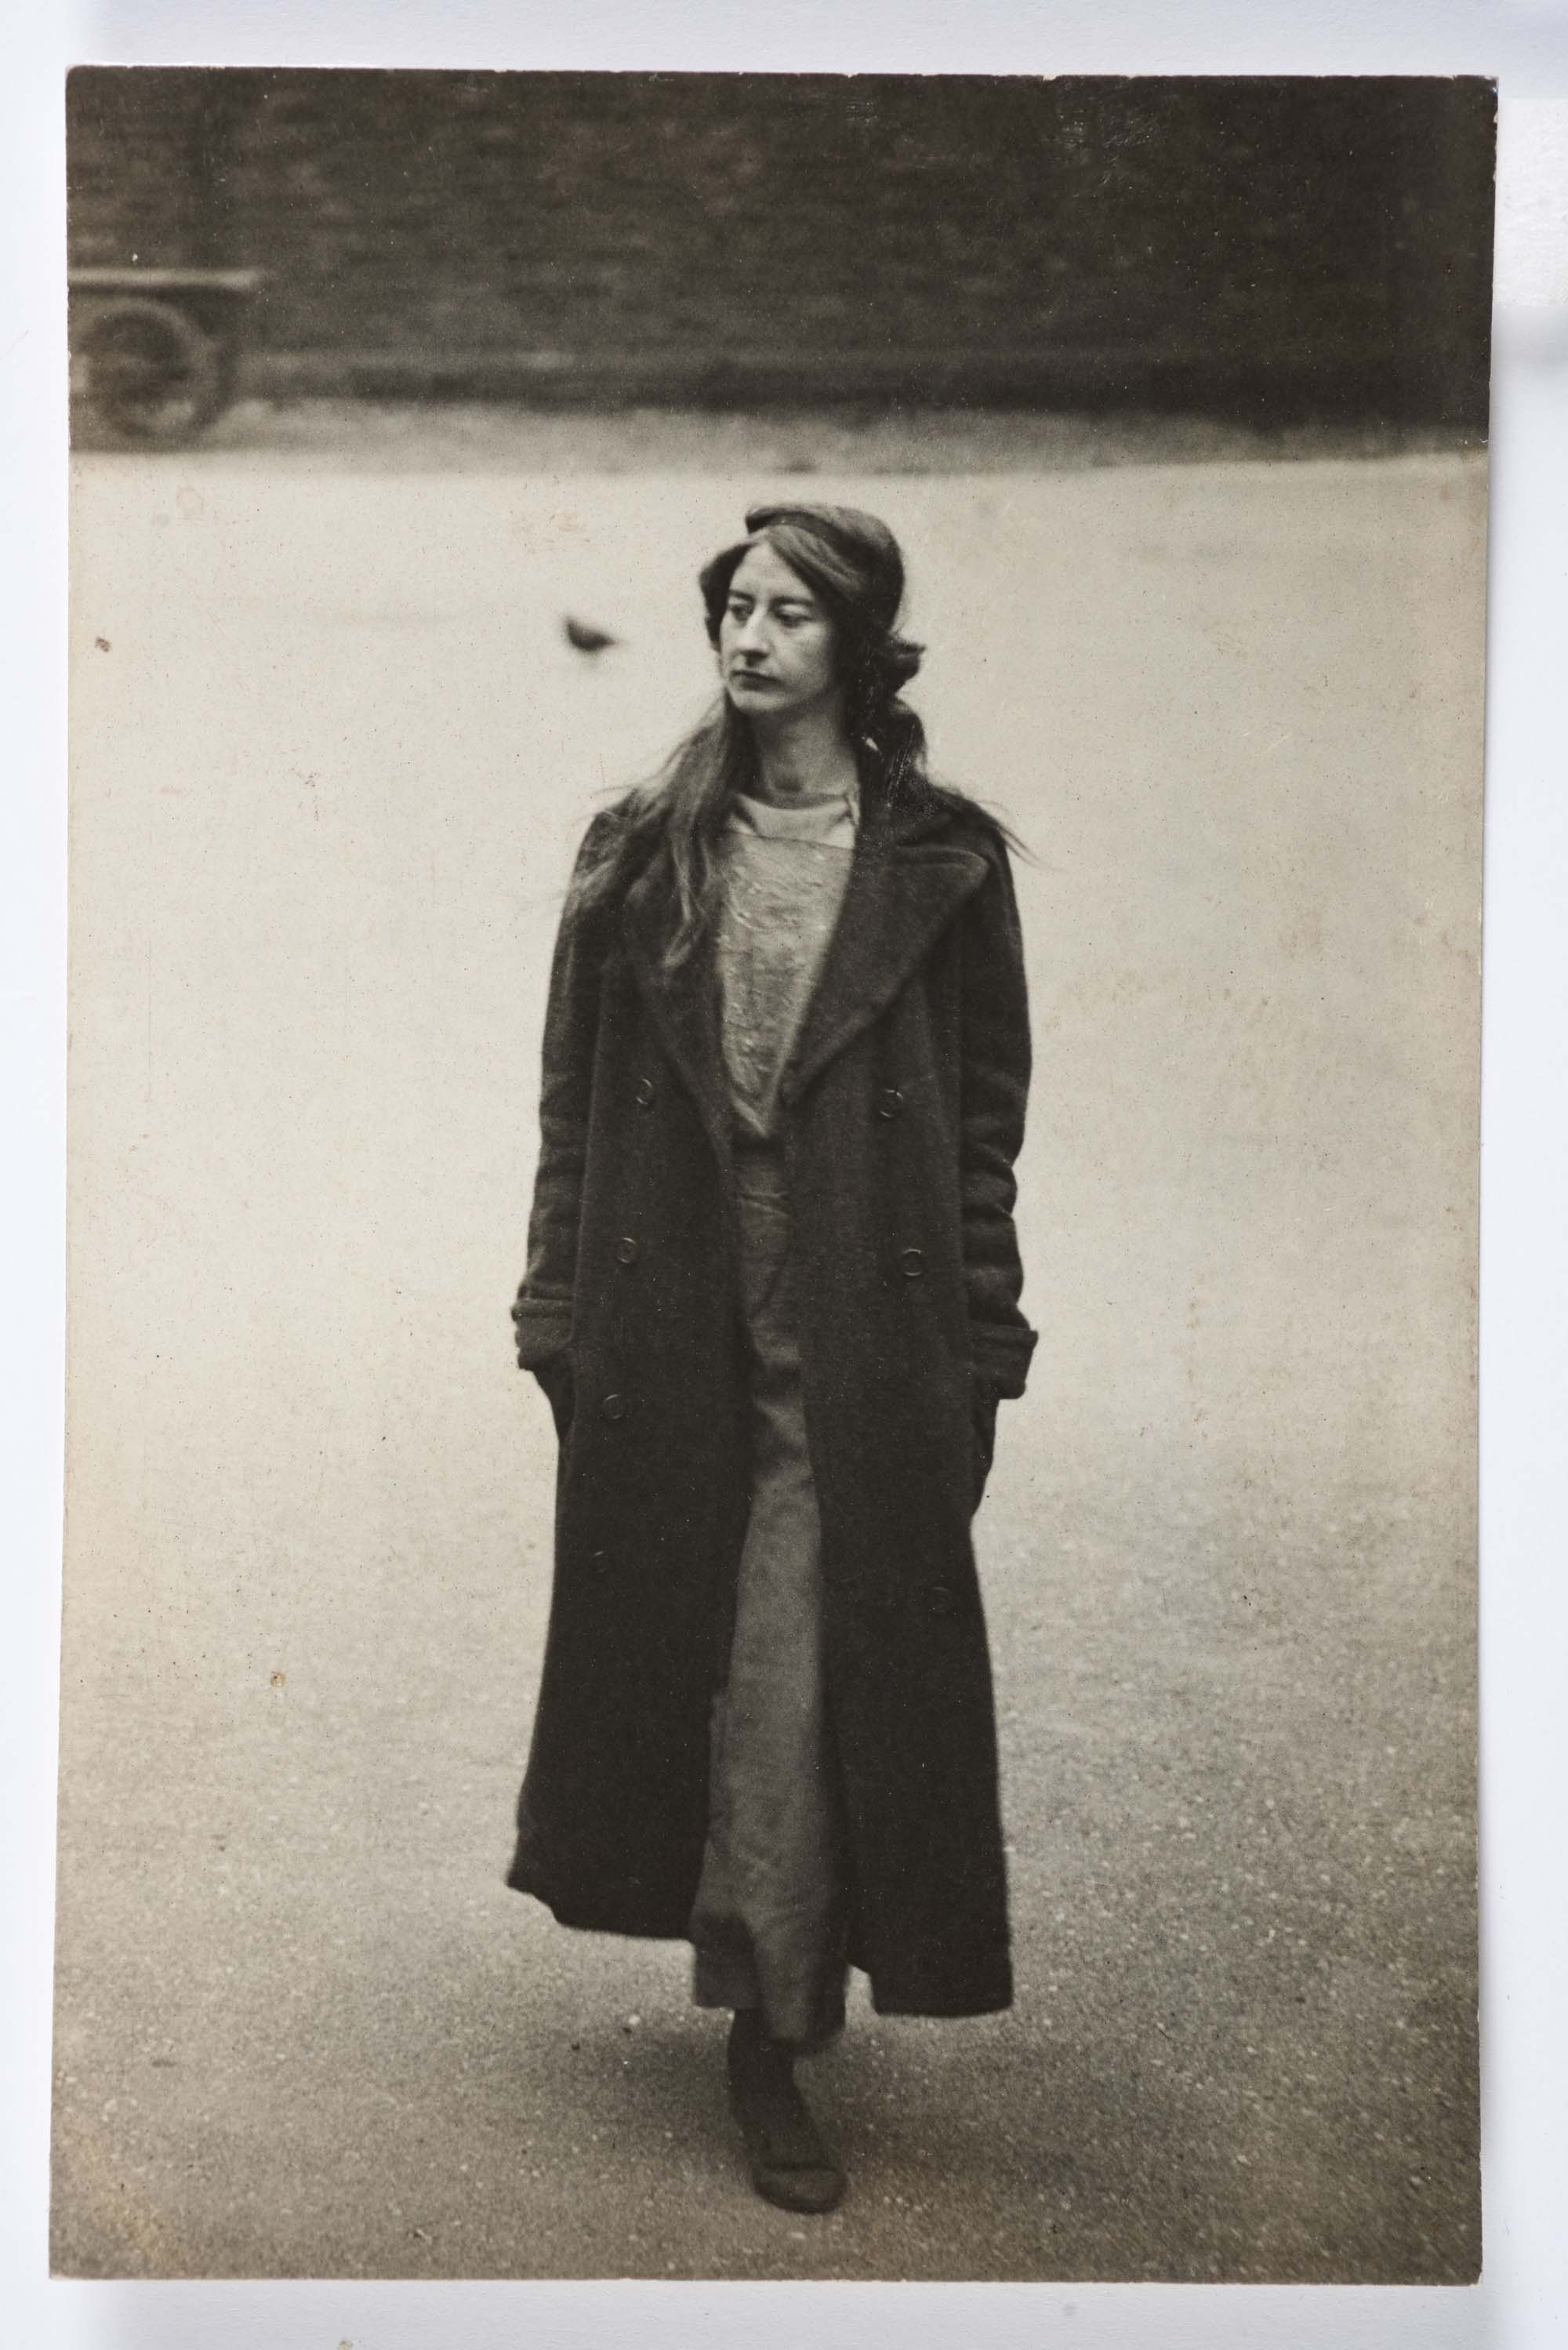 a blck and white photo of woman woth long haor and a long coat over overalls walking in a yard